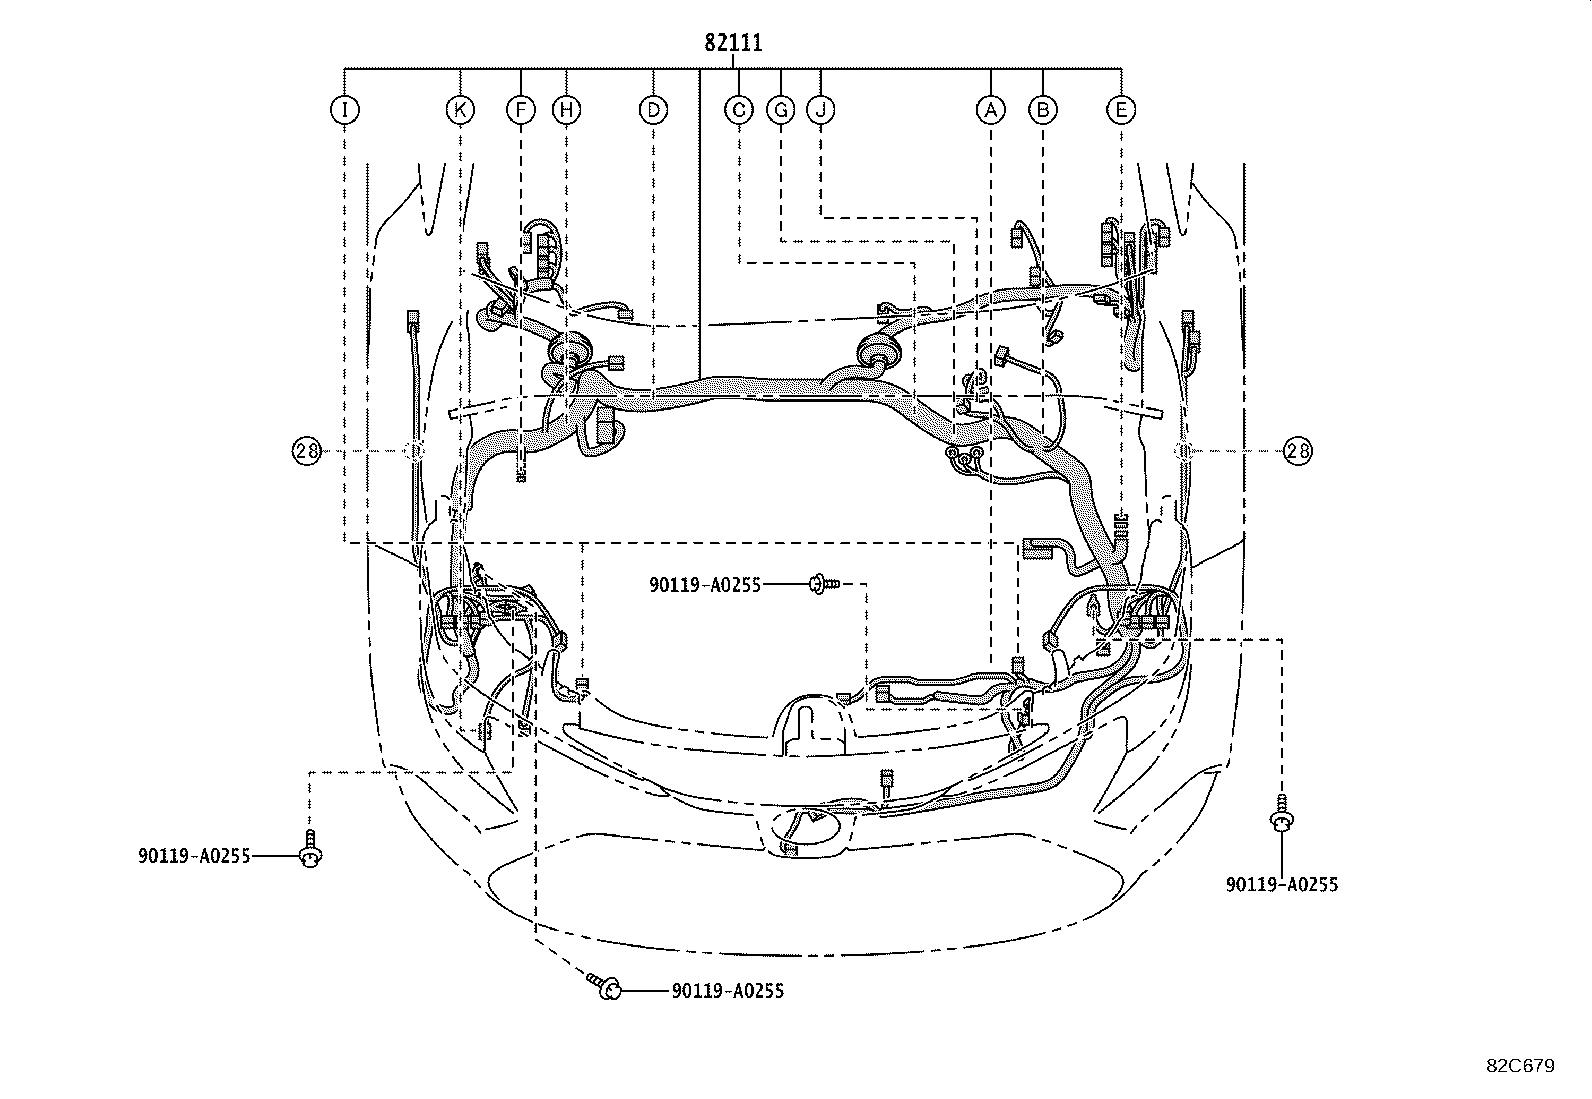 Toyota Corolla Wire, instrument panel. Engine, room, cvt